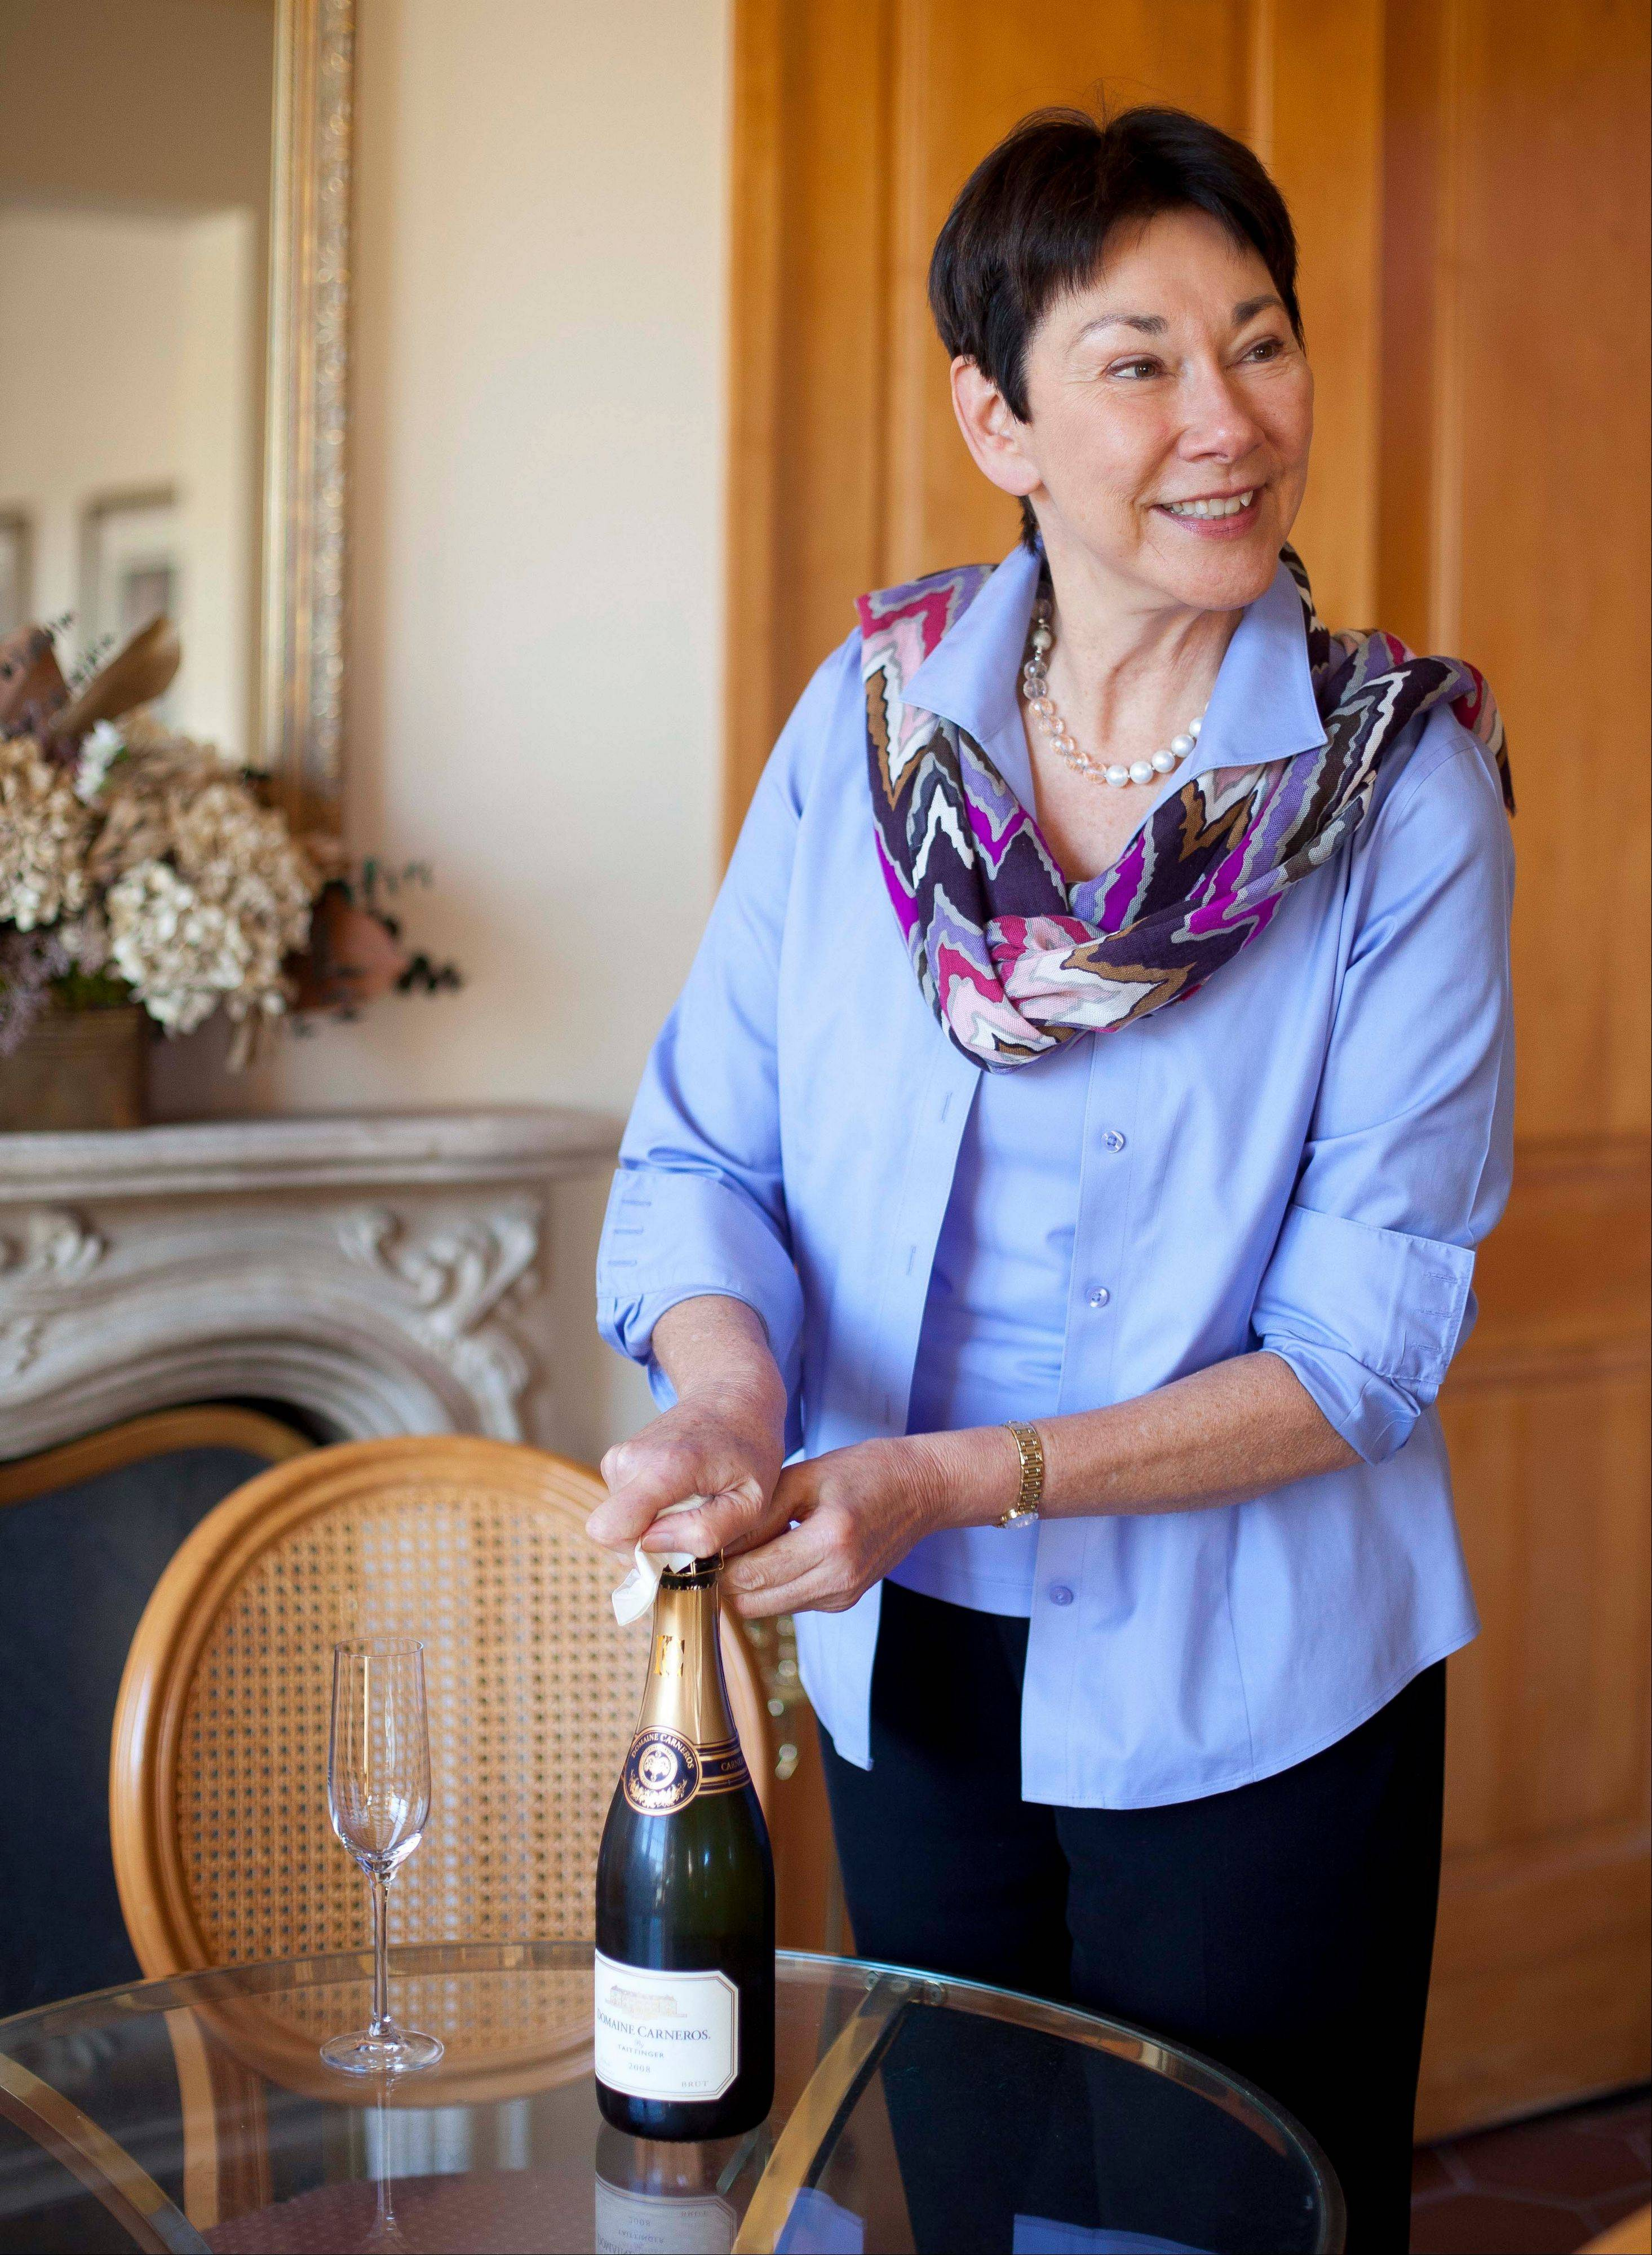 CEO and winemaker Eileen Crane opens a bottle of Brut Cuvee sparkling wine at Domaine Carneros in Napa, Calif. She�s a fan of using sparkling wine is cocktails.